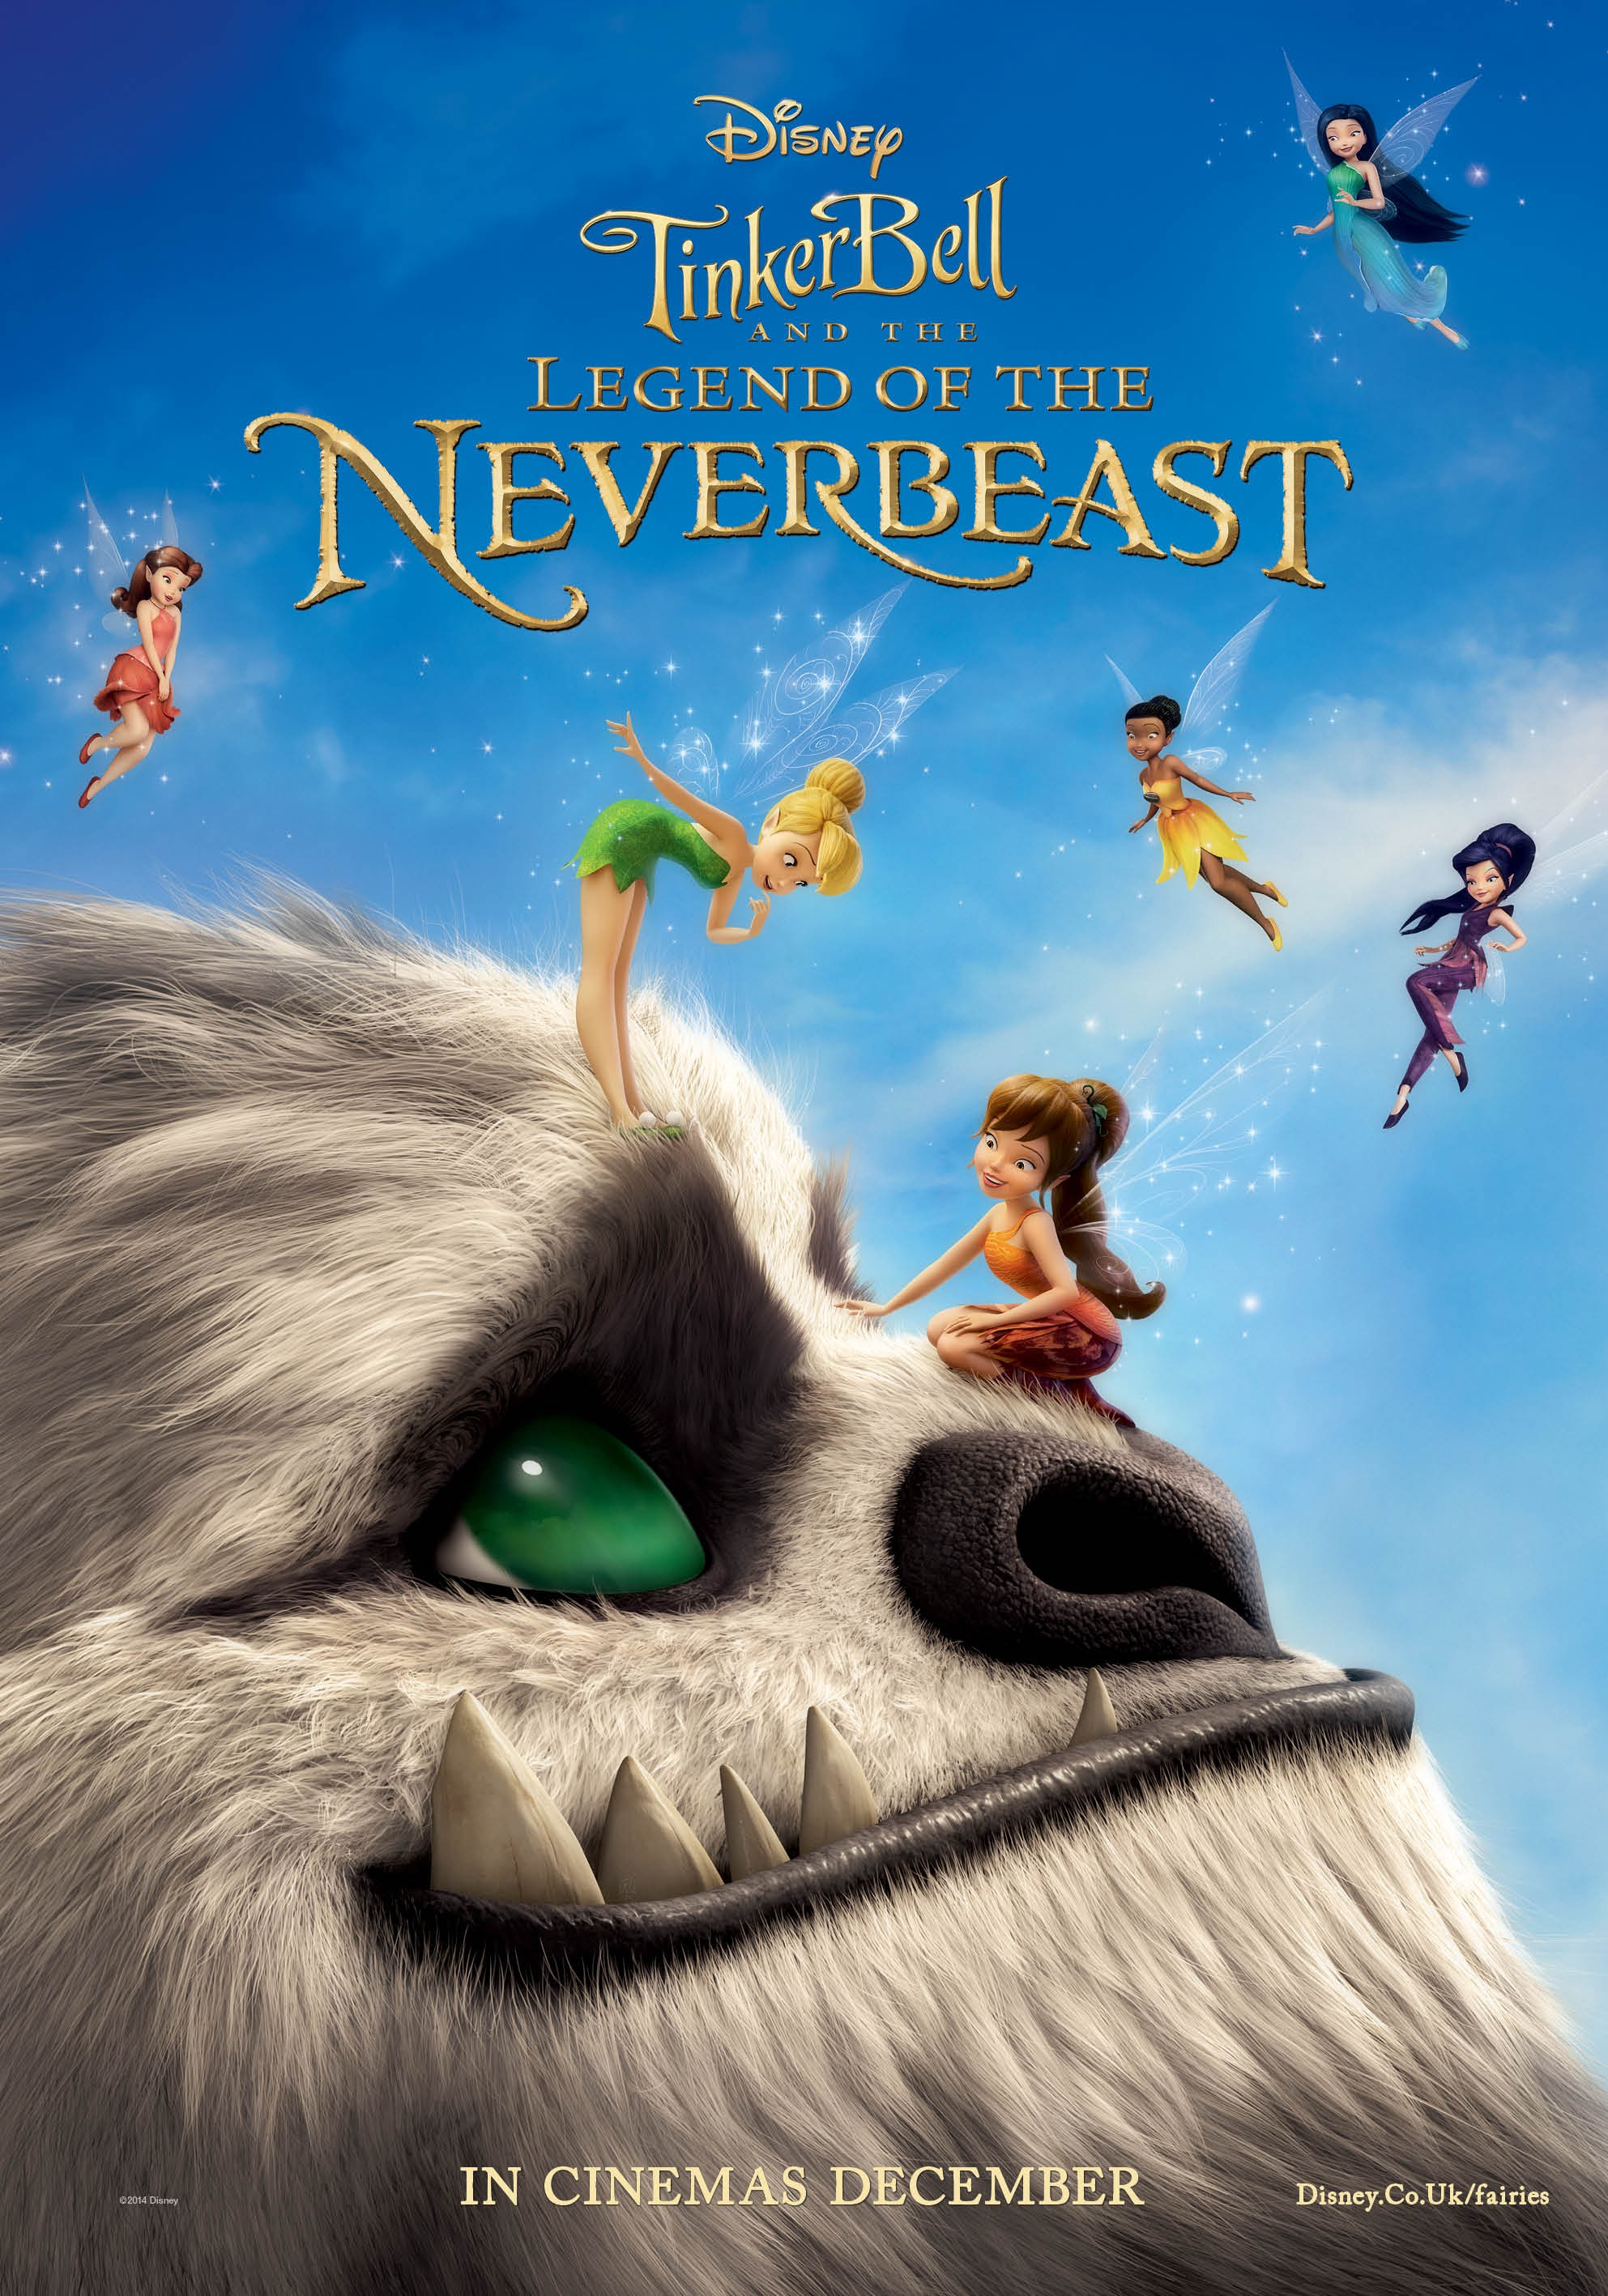 Legend of the Neverbeast-Official Poster XXLG-12NOVEMBRO2014